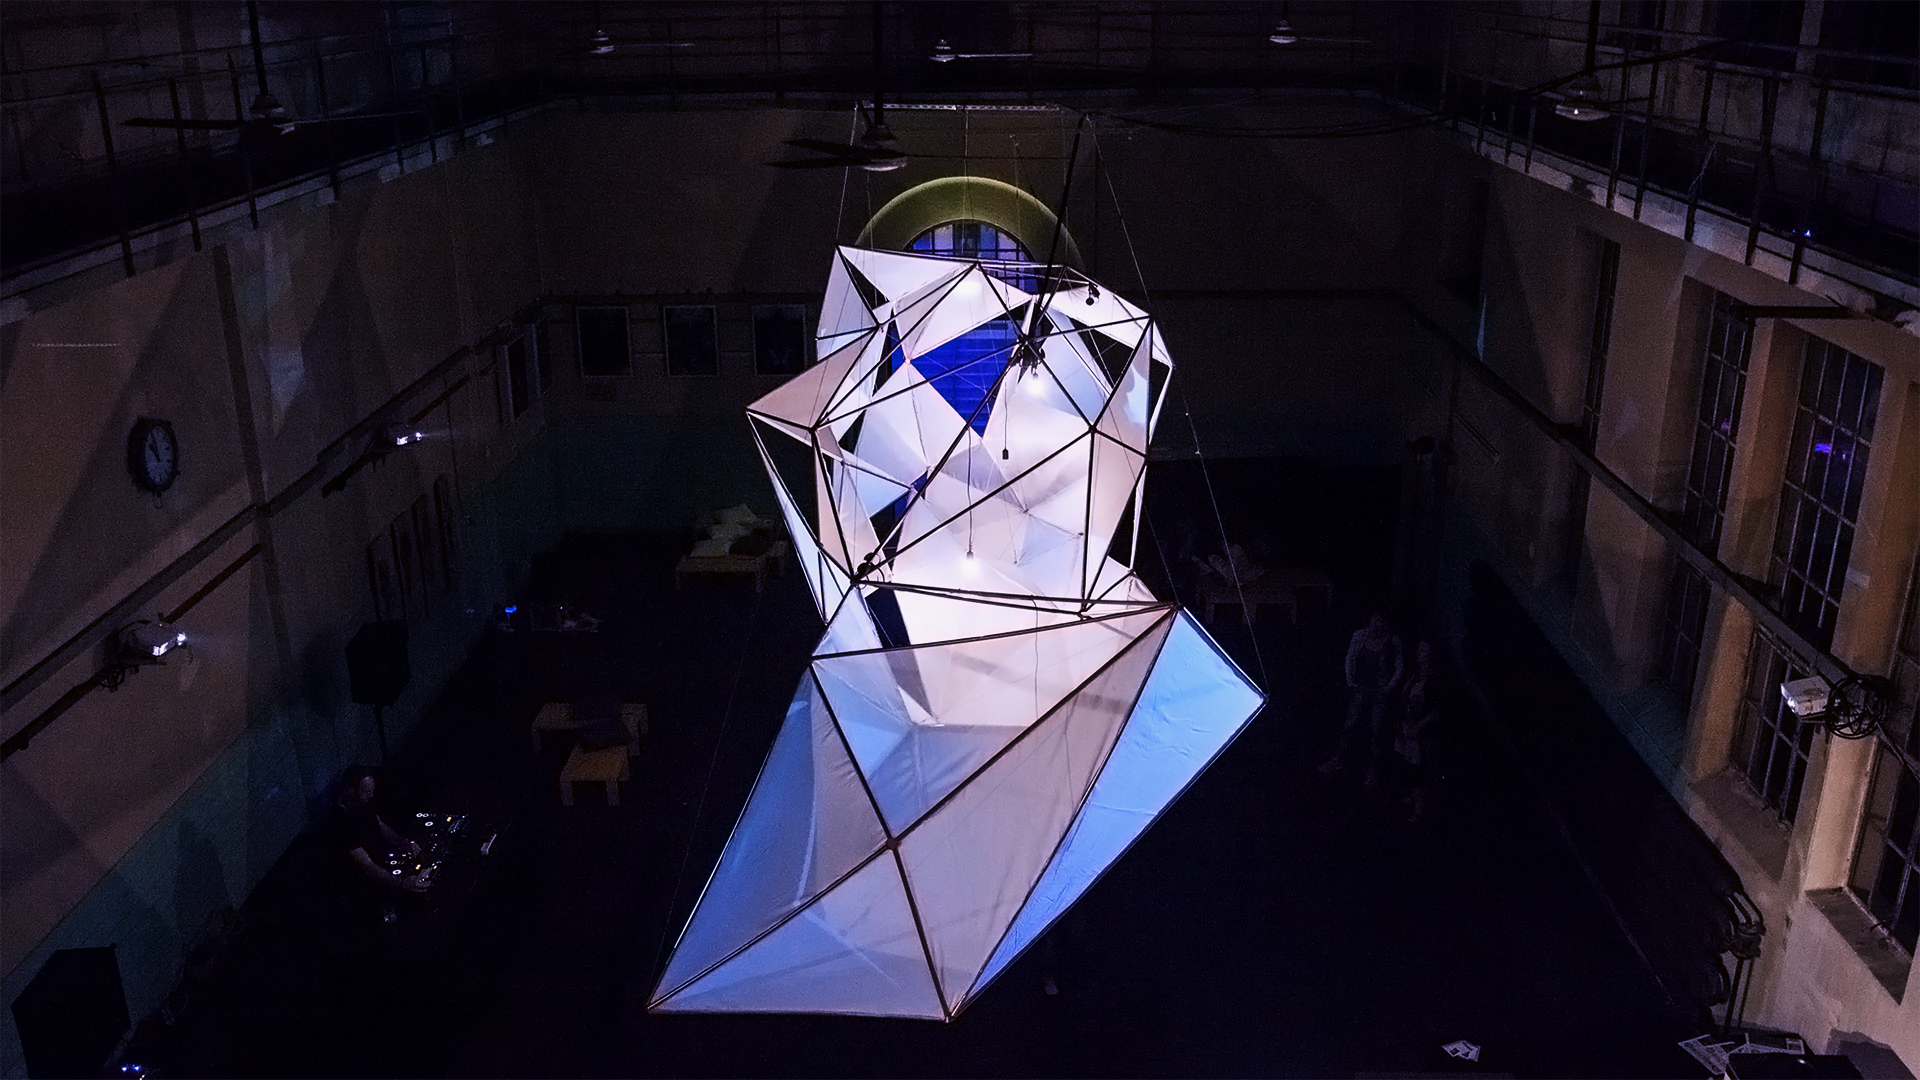 Media Art Installation Orbis in Gaswerk Augsburg - Projections